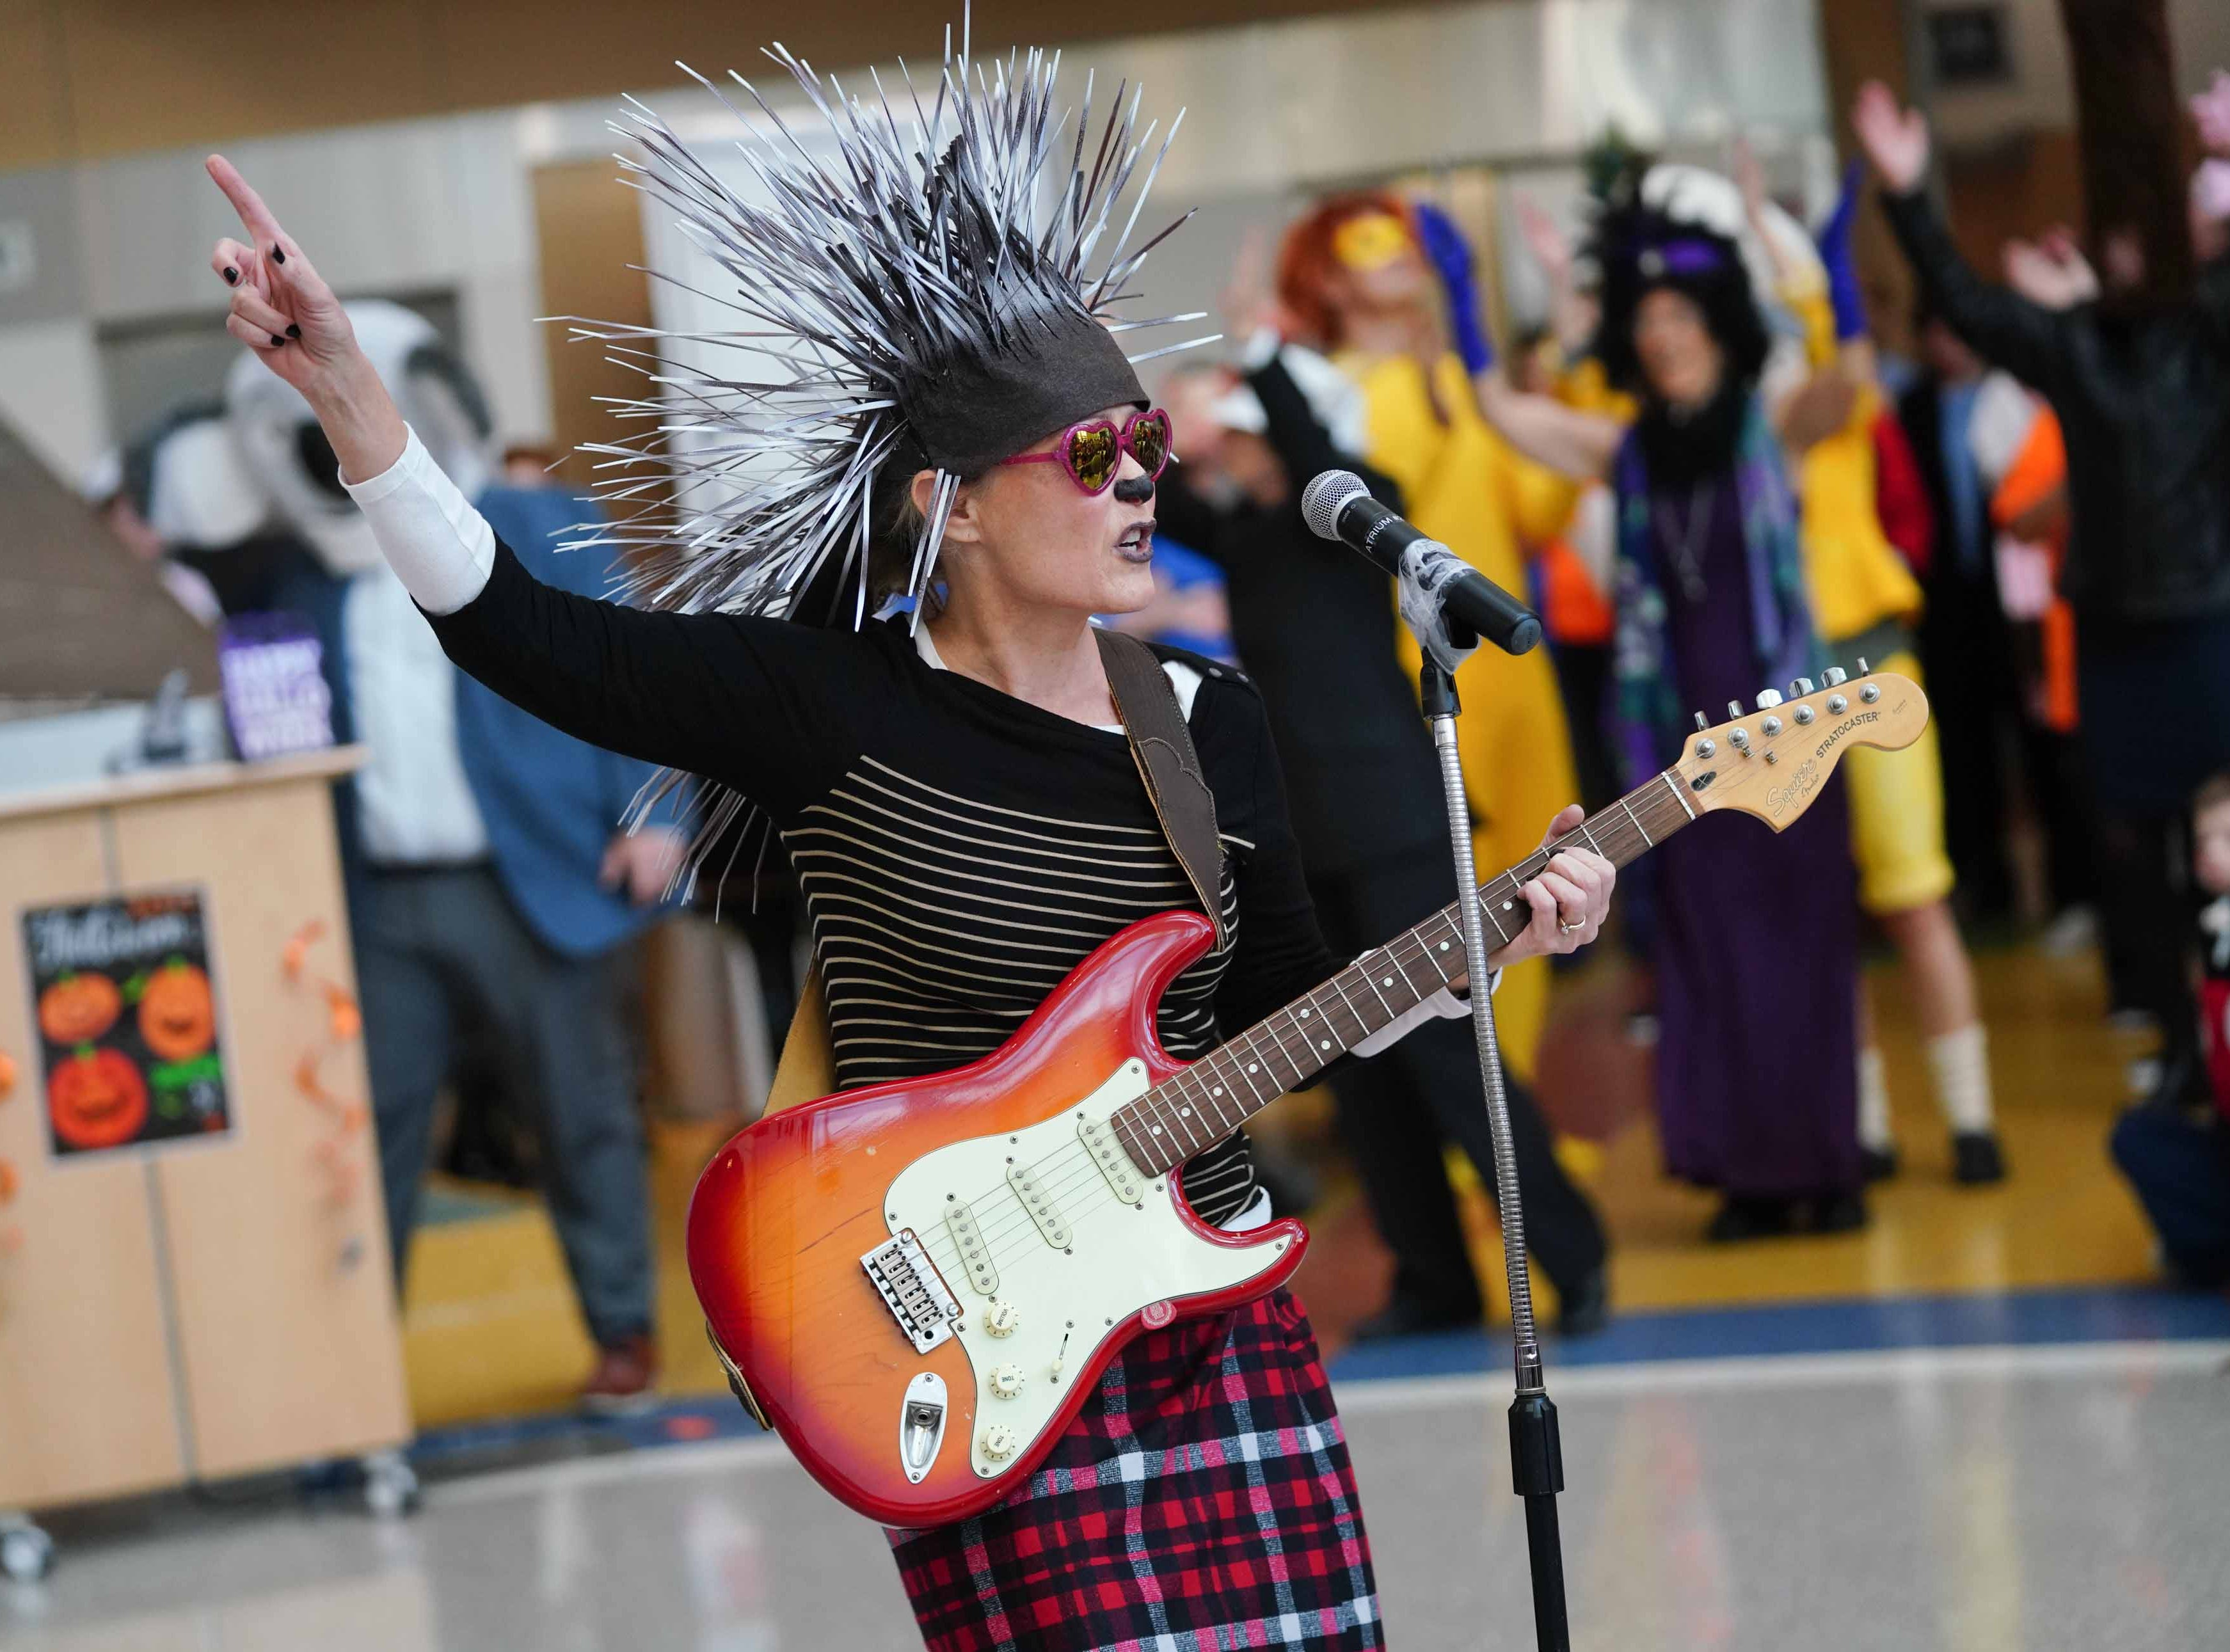 """Dr. Sharon Gould, at Nemours/A.I. duPont Hospital for Children dressed as character Ash from the movie """"Sing"""" for the annual Halloween Lip Sync contest in the hospital's atrium on Halloween. Select patients got to judge the performances for a winner."""